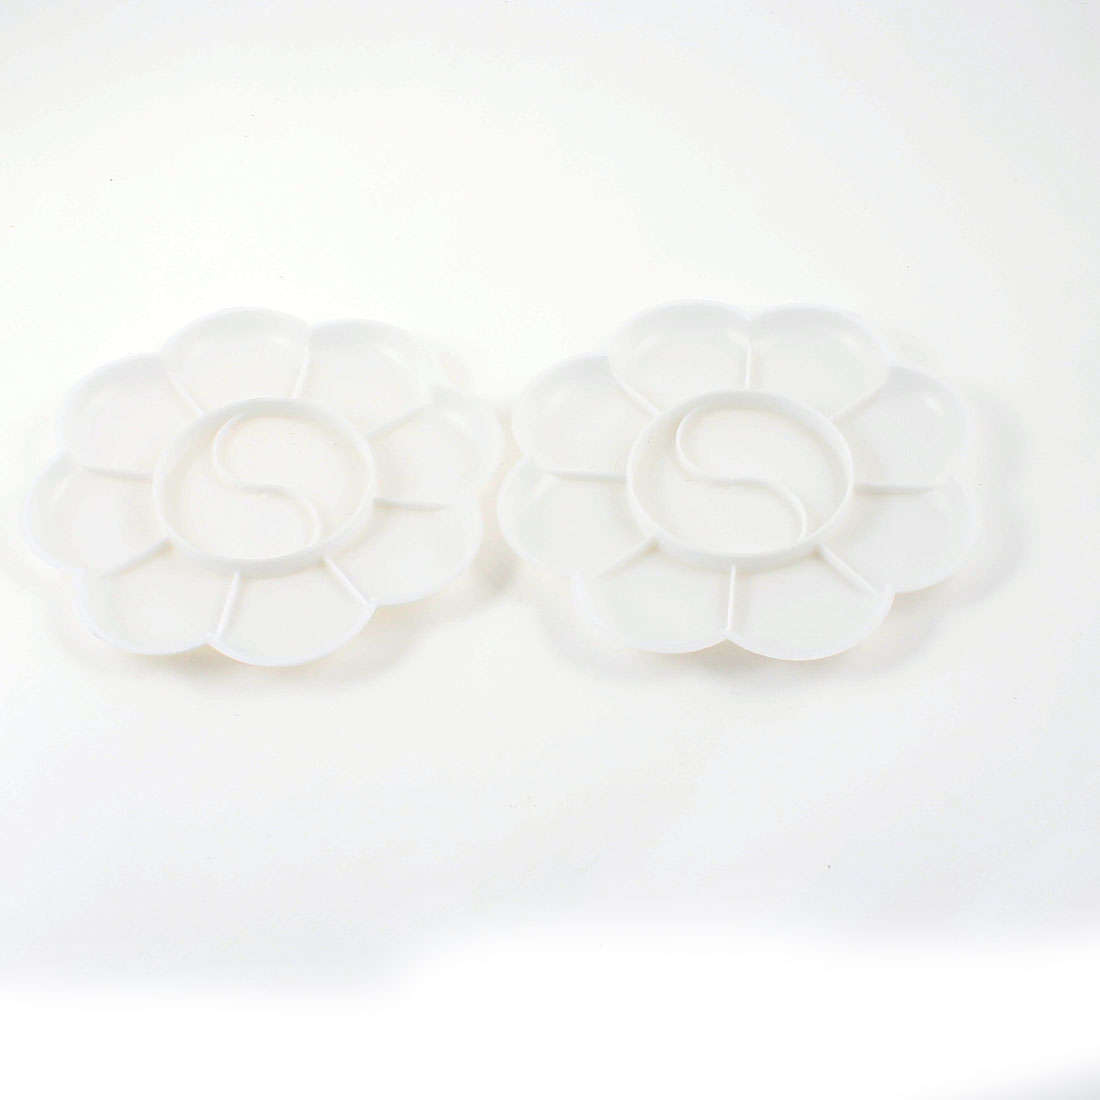 2 Pcs White Plastic Flower Shape Watercolor Paint Plate Tray Mixing Palette